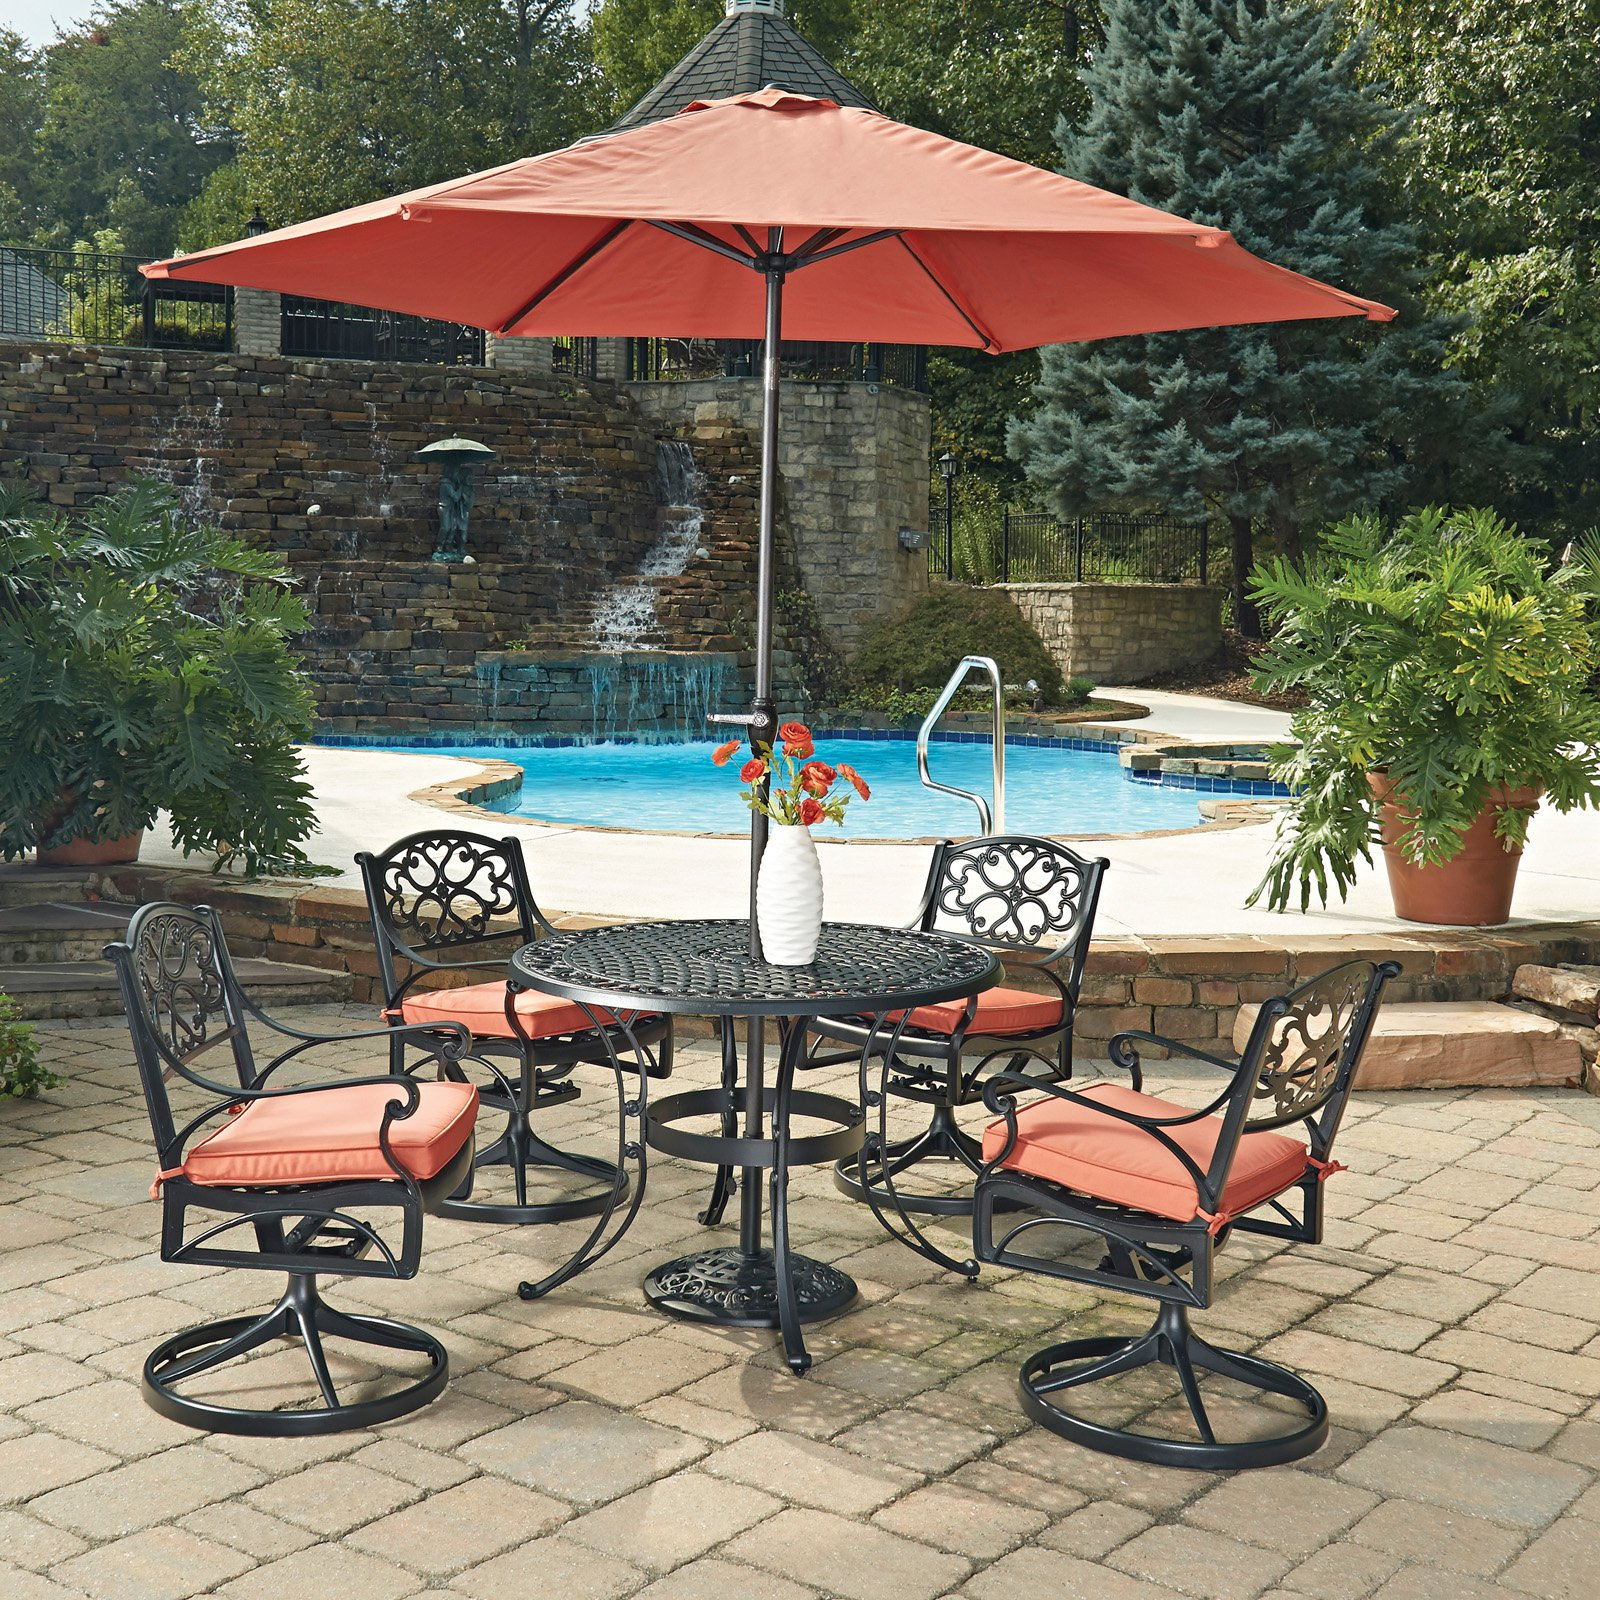 Biscayne Black Round 7 Pc Outdoor Dining Table, 4 Arm Chairs with Cushions & Umbrella with Base